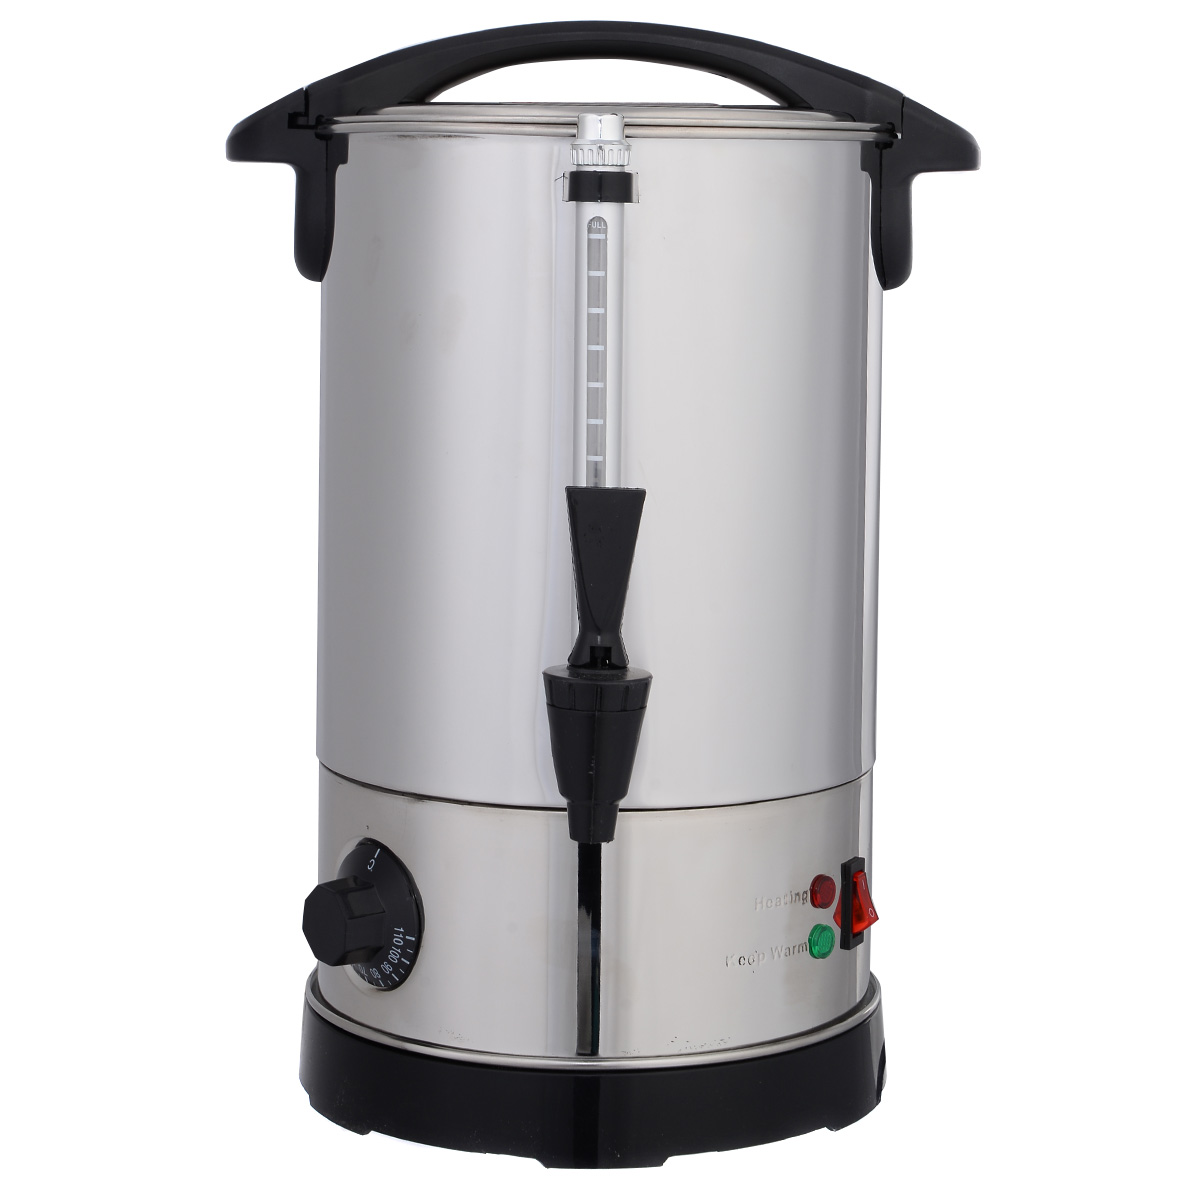 Costway Stainless Steel 6 Quart Electric Water Boiler Warmer Hot Water Kettle Dispenser